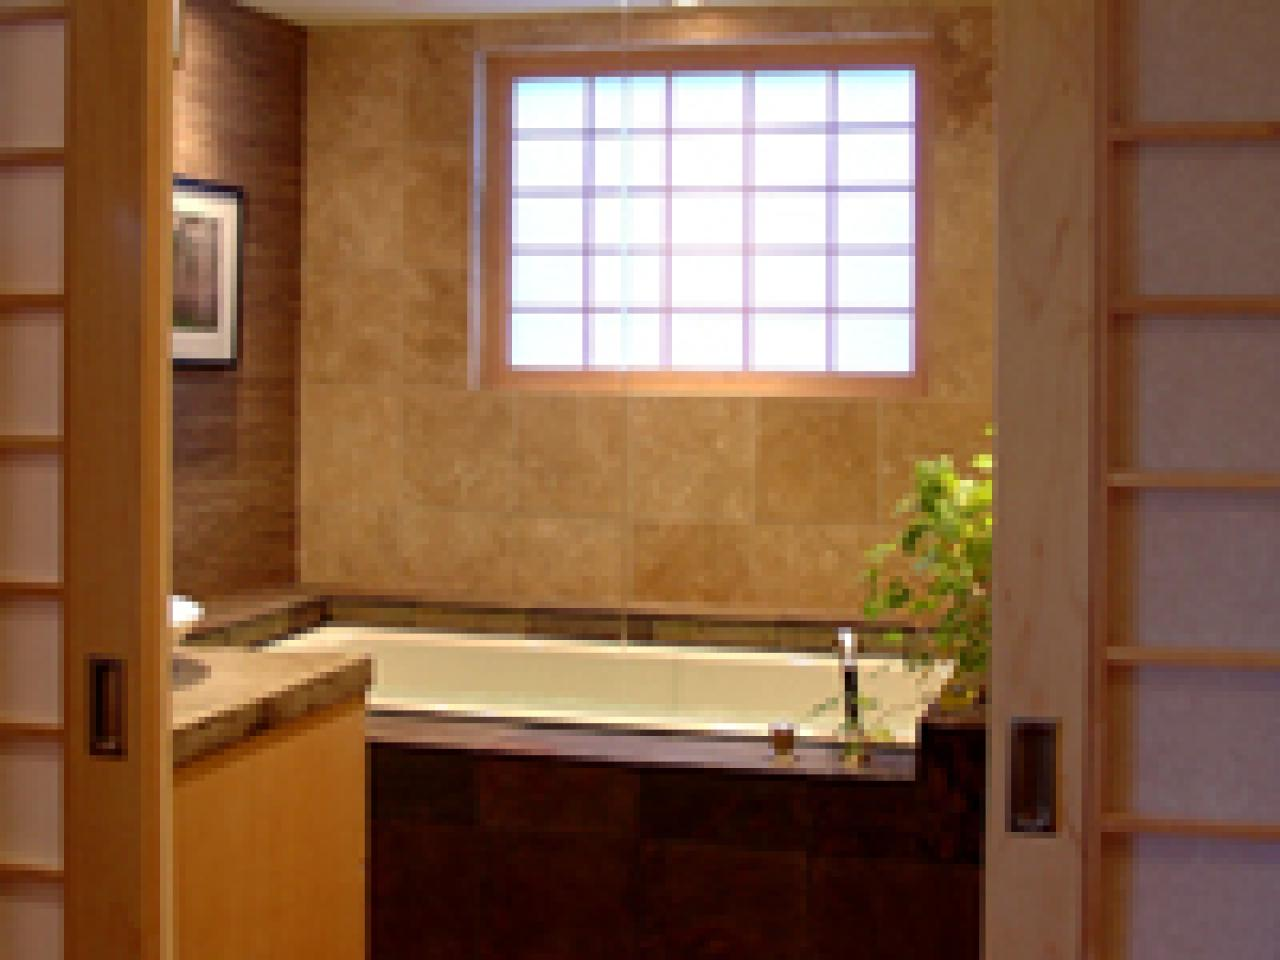 Bathroom Zen Design Ideas designing your zen bathroom | hgtv